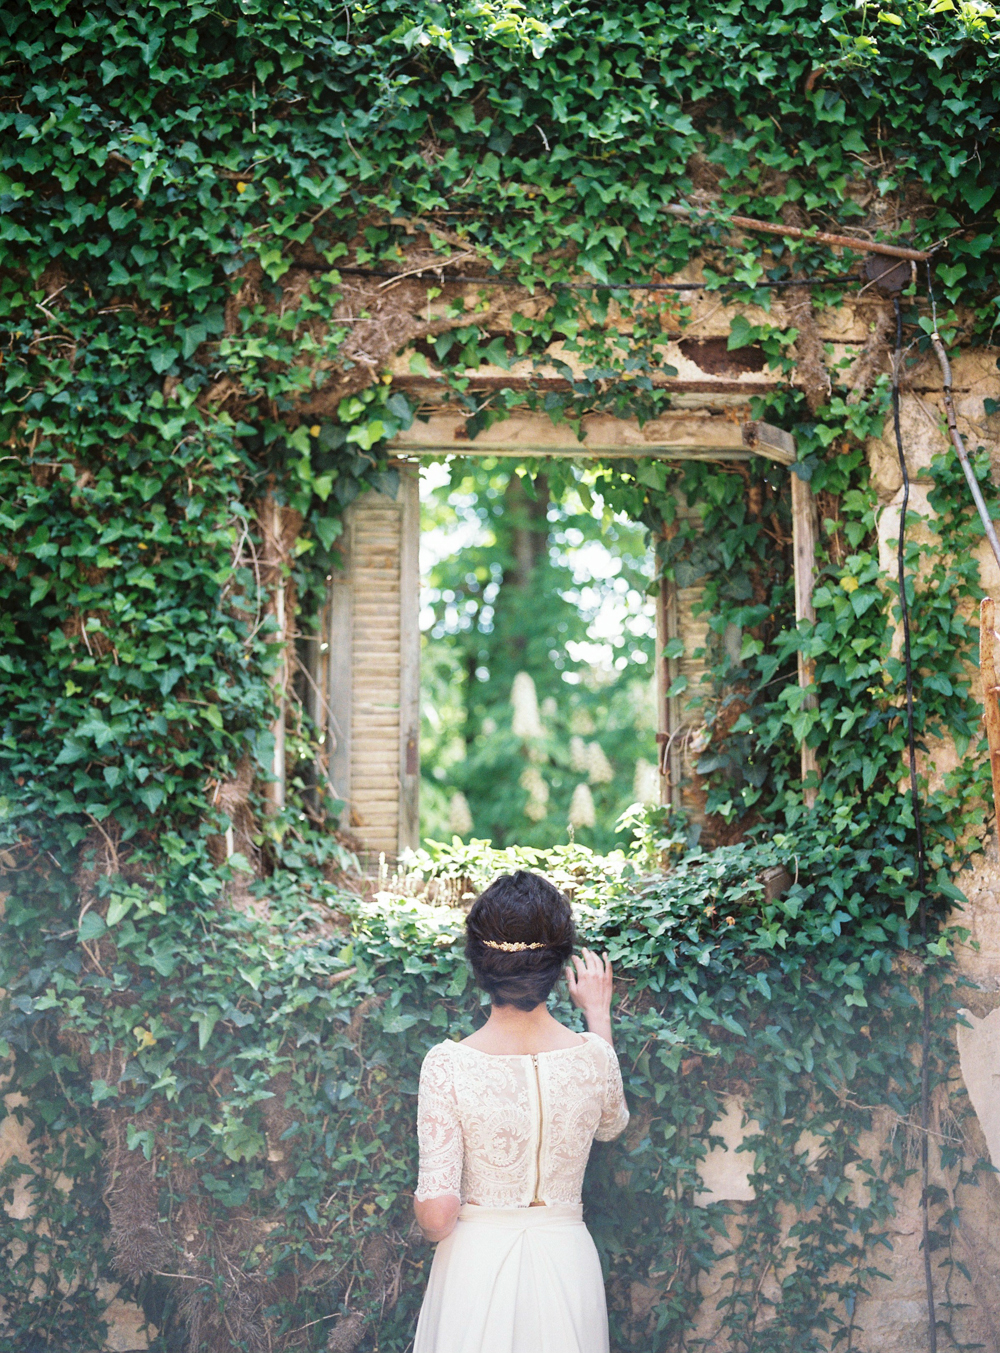 Dreamy abandoned place in Greece for weddings